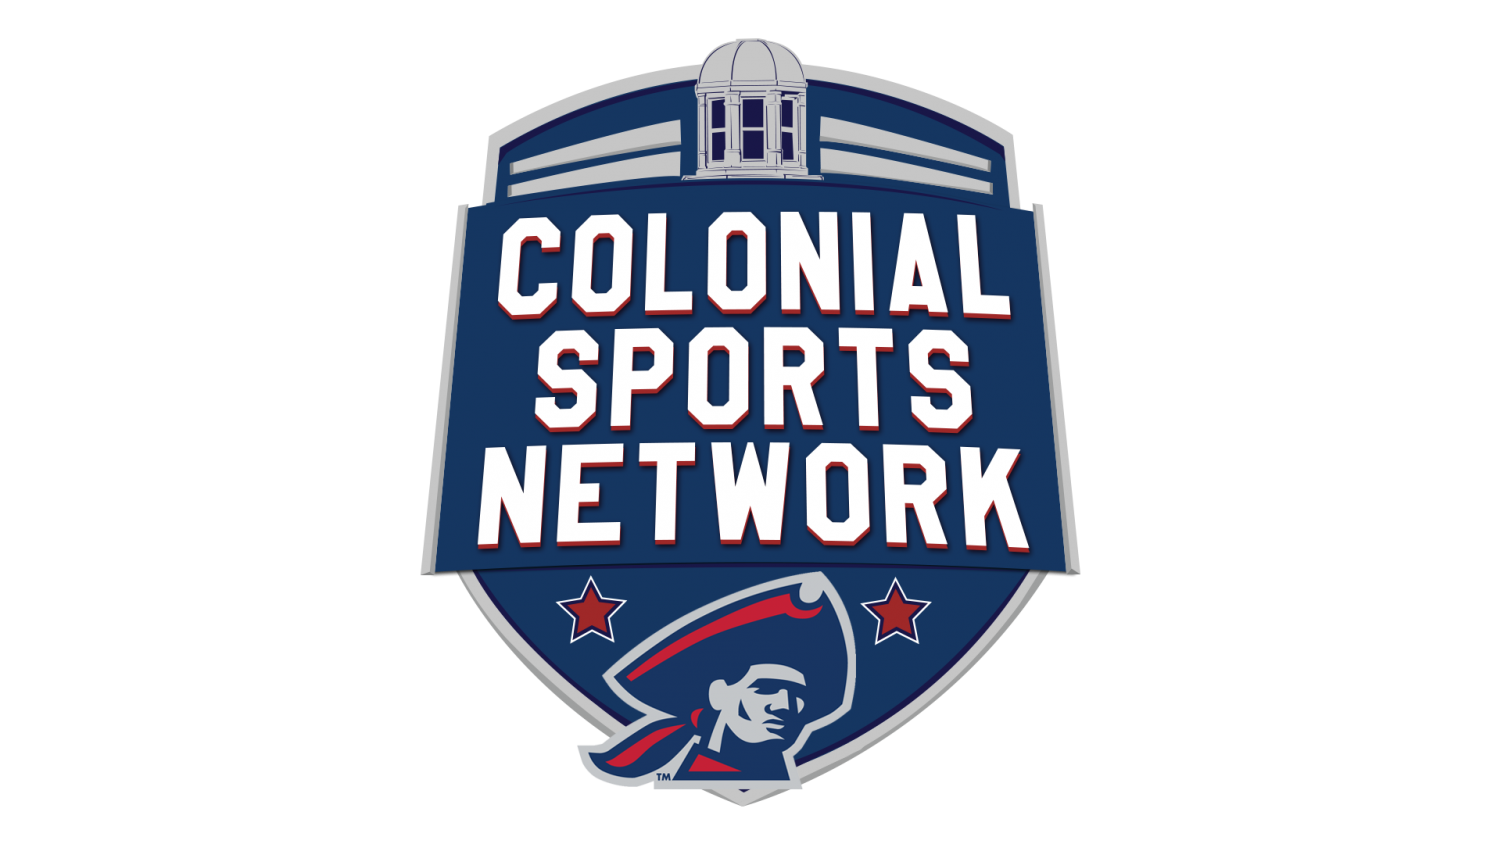 Colonial Sports Network